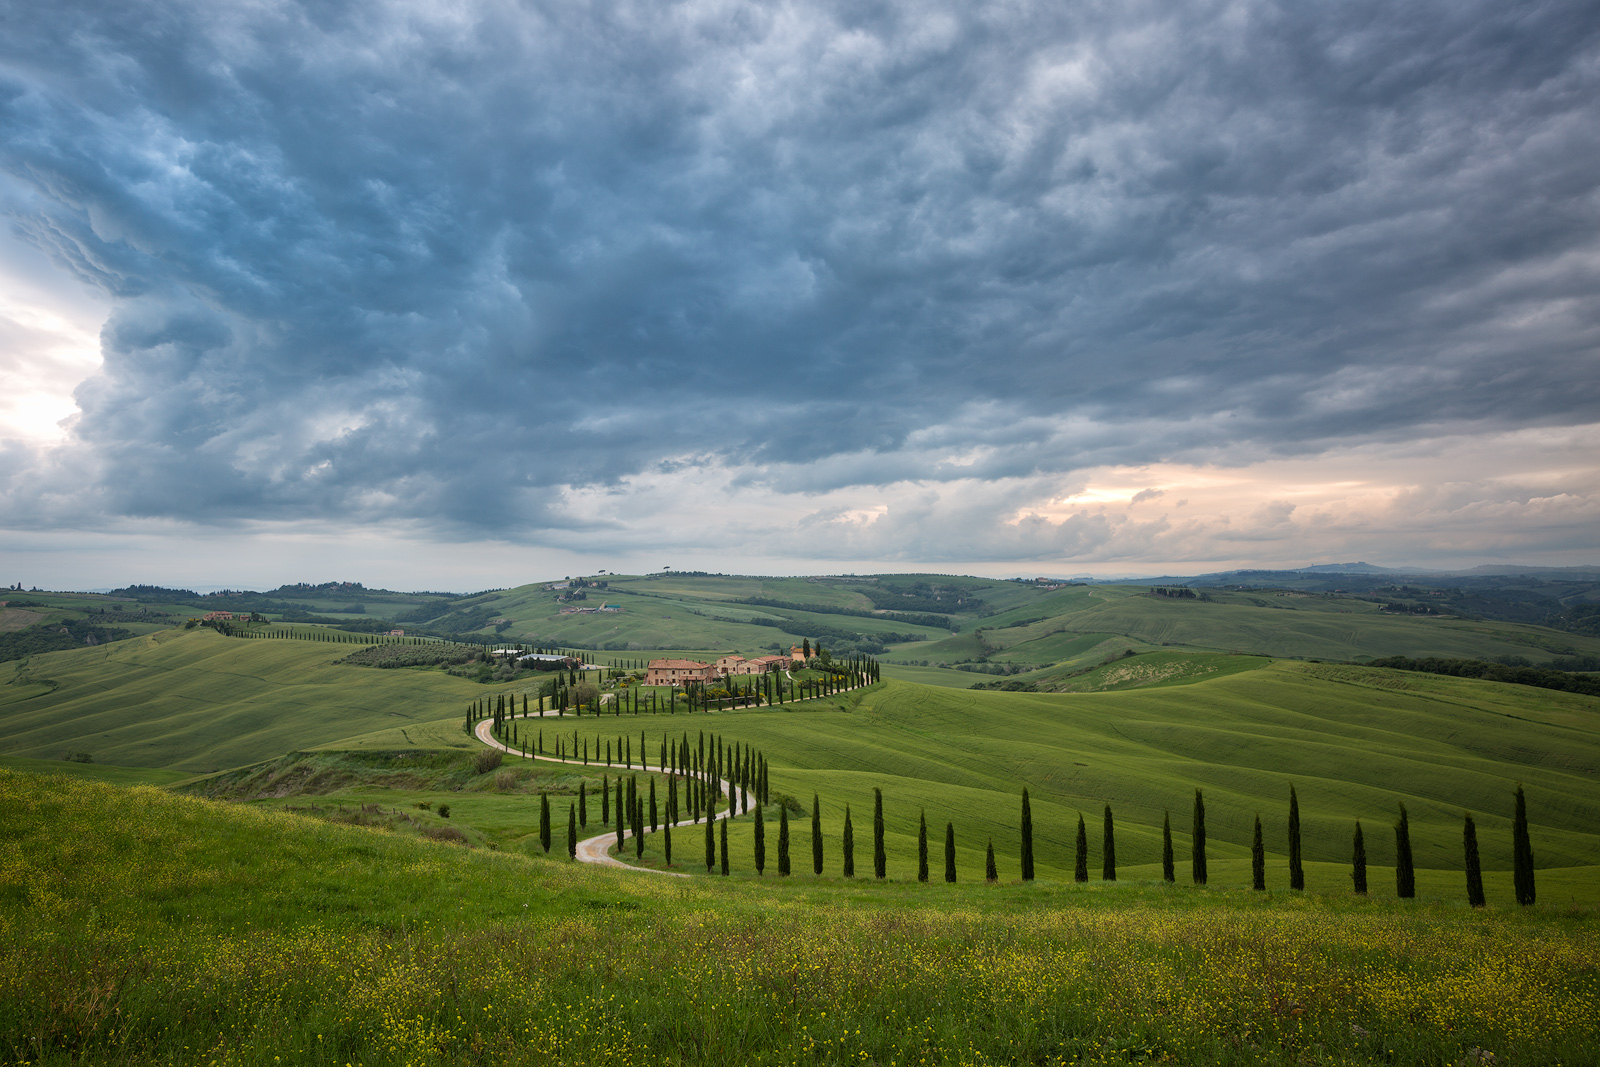 2016,May,SKY,Spring,asciano,clouds,cyprus,europe,evening,hills,horizontal,italy,la foce,landscape,montepulciano,road,rolling,siena province,sunset,tree,trees,tuscany,wheat fields,zig-zag,zig-zagging, photo